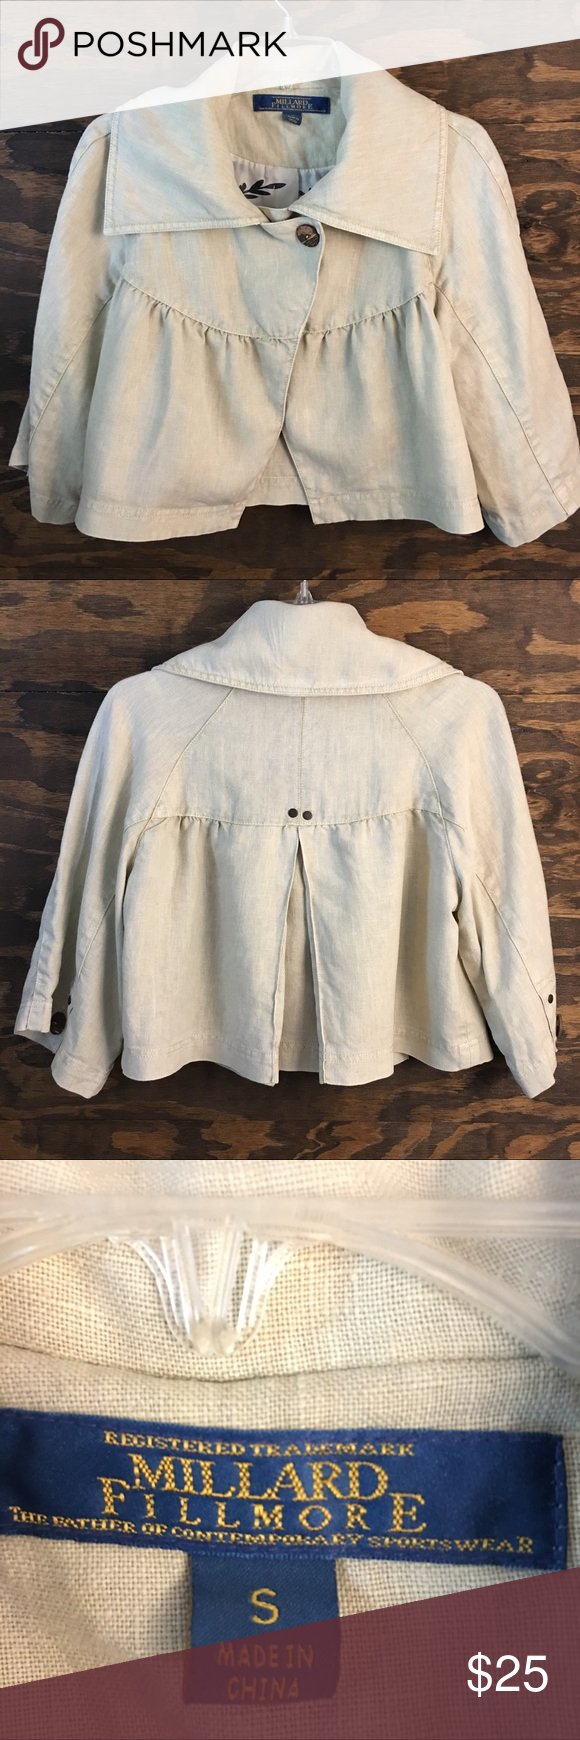 Millard Fillmore Cropped Linen Jacket Size Small Anthropologie Millard Fillmore Cropped Linen Jacket Anthropologie Jackets & Coats